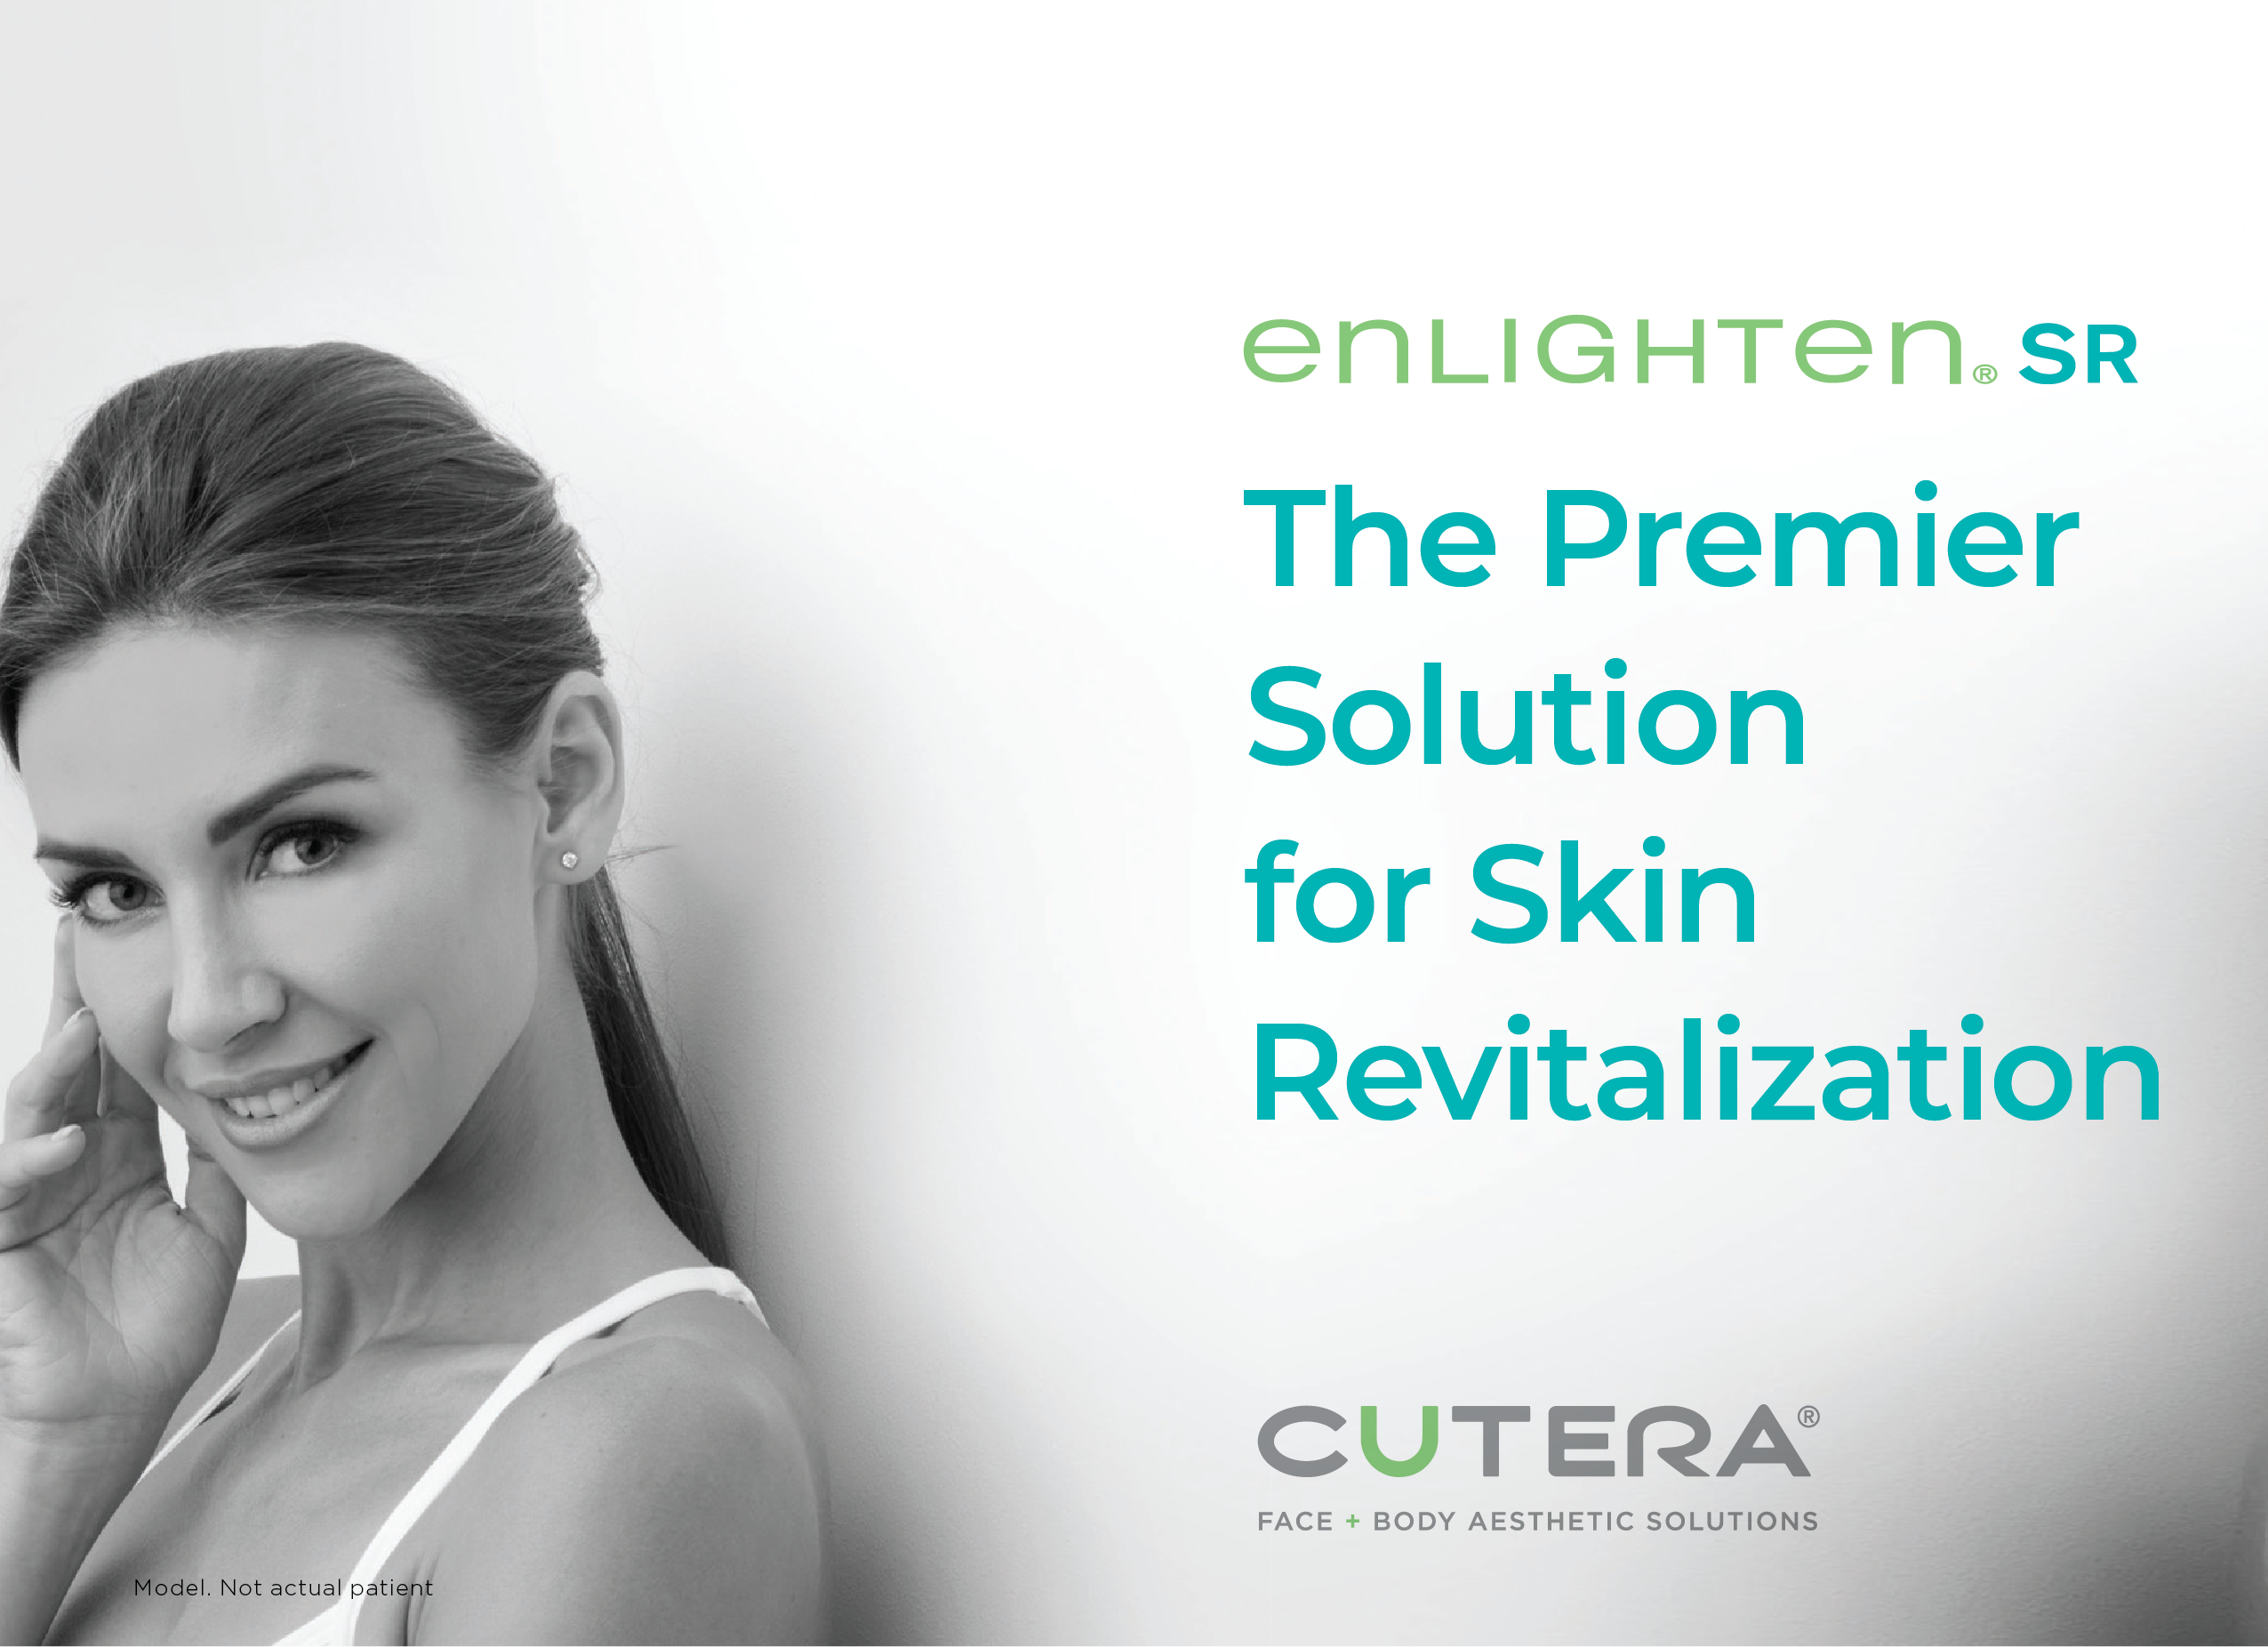 Massive Savings with enlighten SR by Cutera until end of March 2019